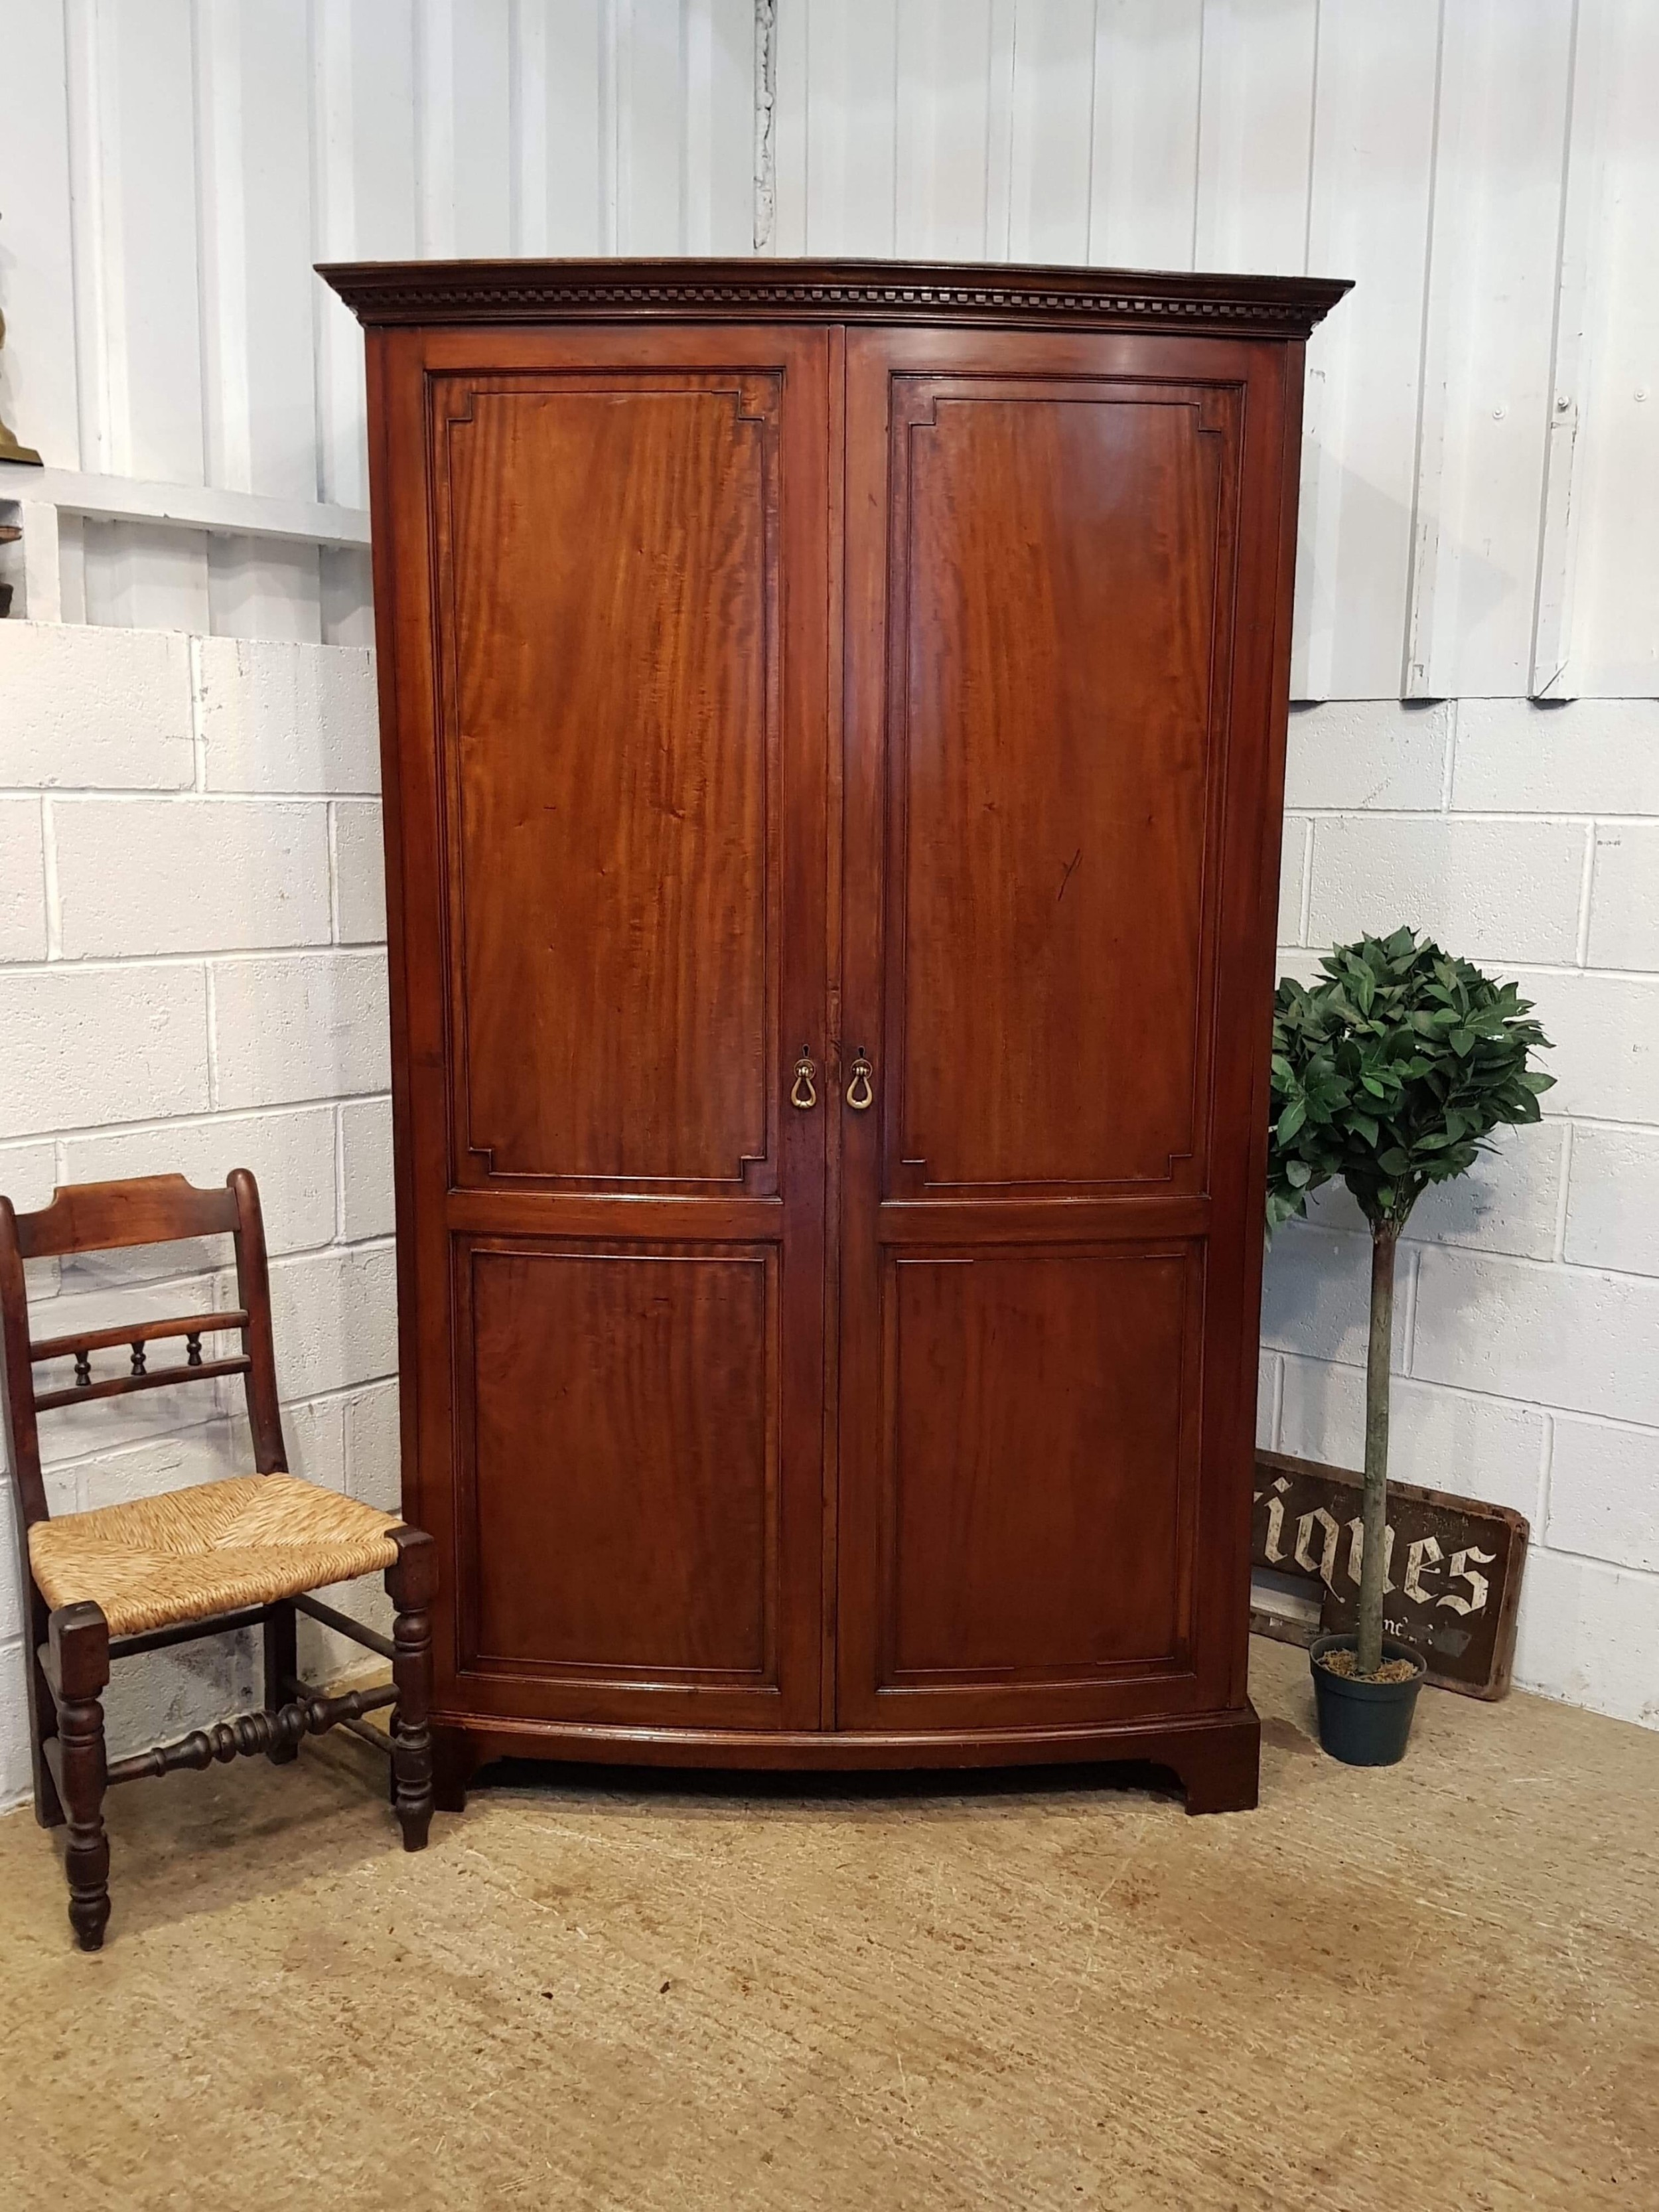 Edwardian (1901-1910) The Cheapest Price Edwardian Bowfront 2 Door Oak Wardrobe With Key Antique Furniture